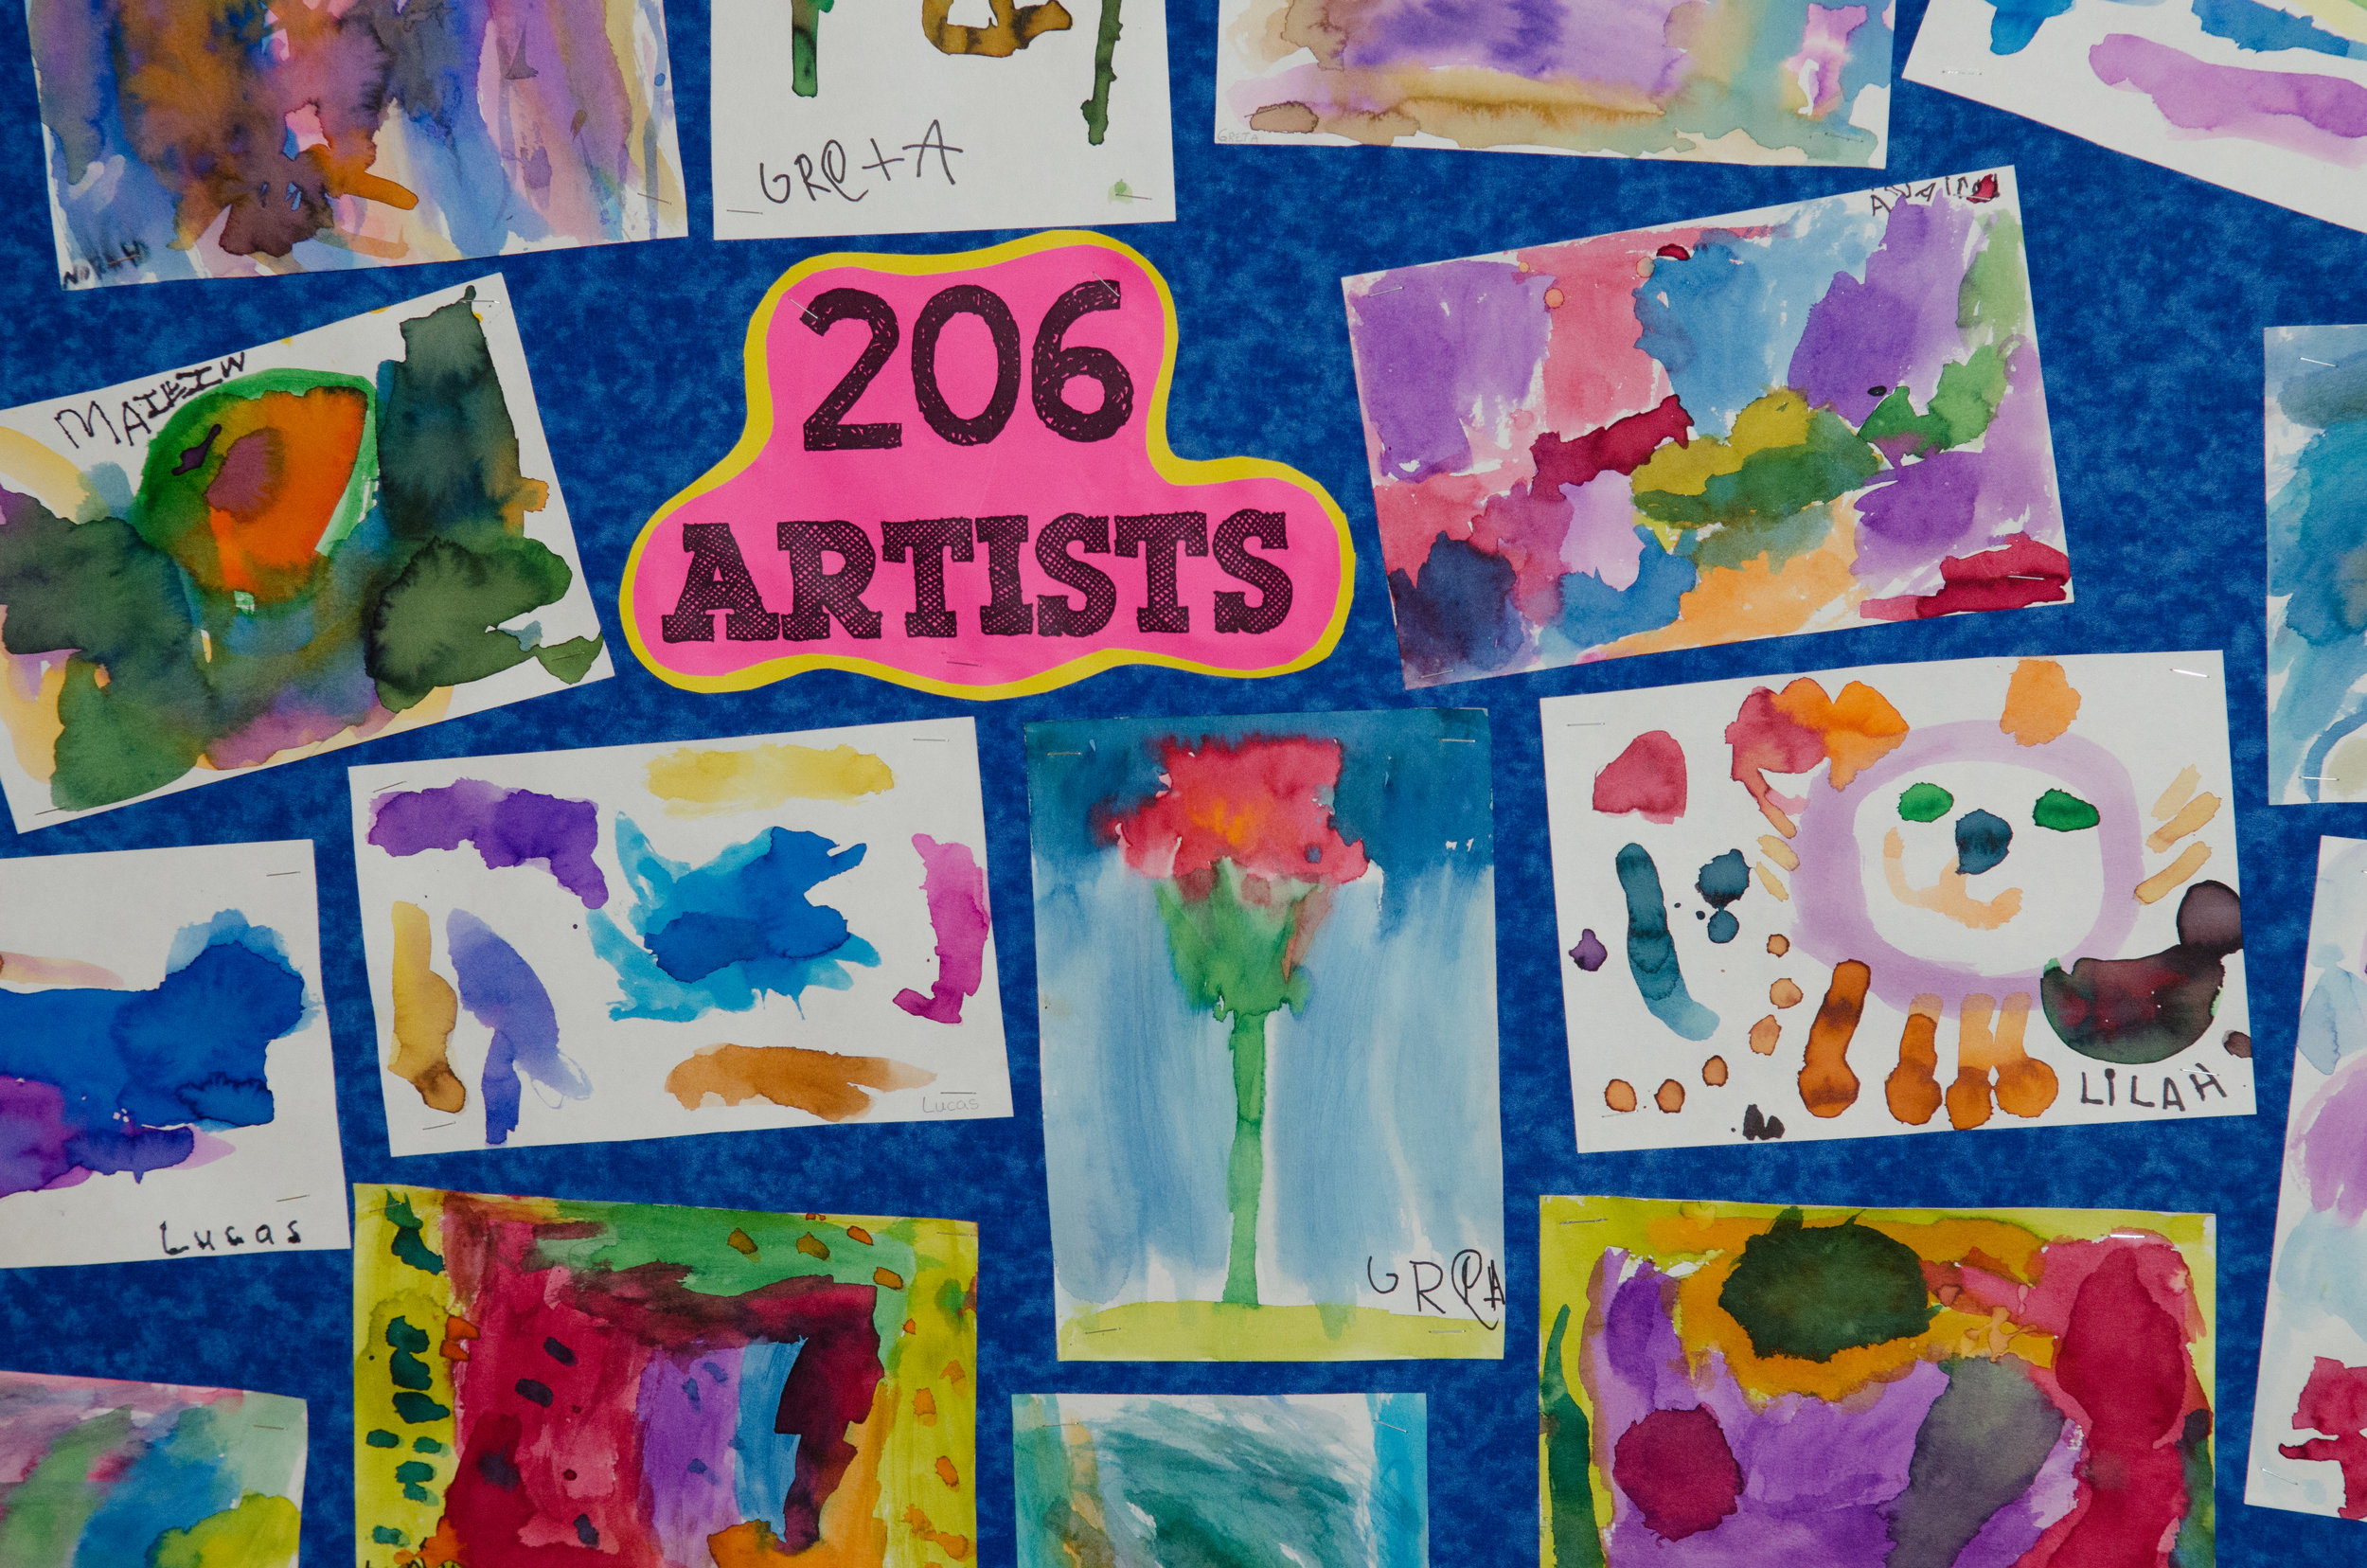 Art is integrated into all of our classes - though some of our favorite portraits come from our K-1 students!